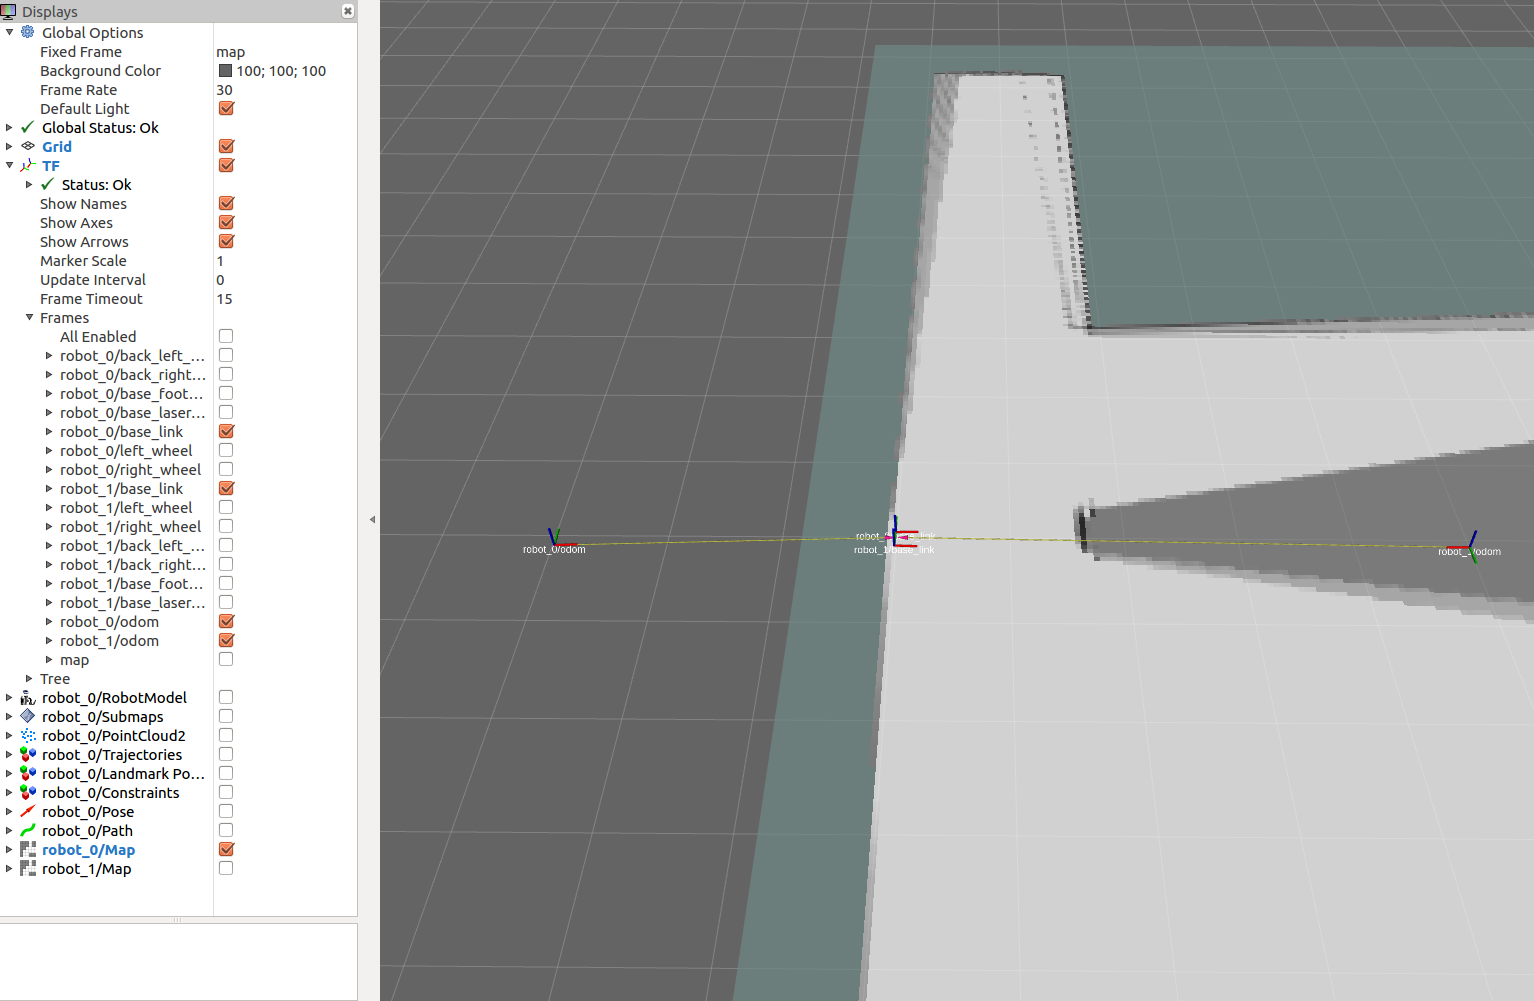 Running cartographer on several simulated gazebo robots · Issue